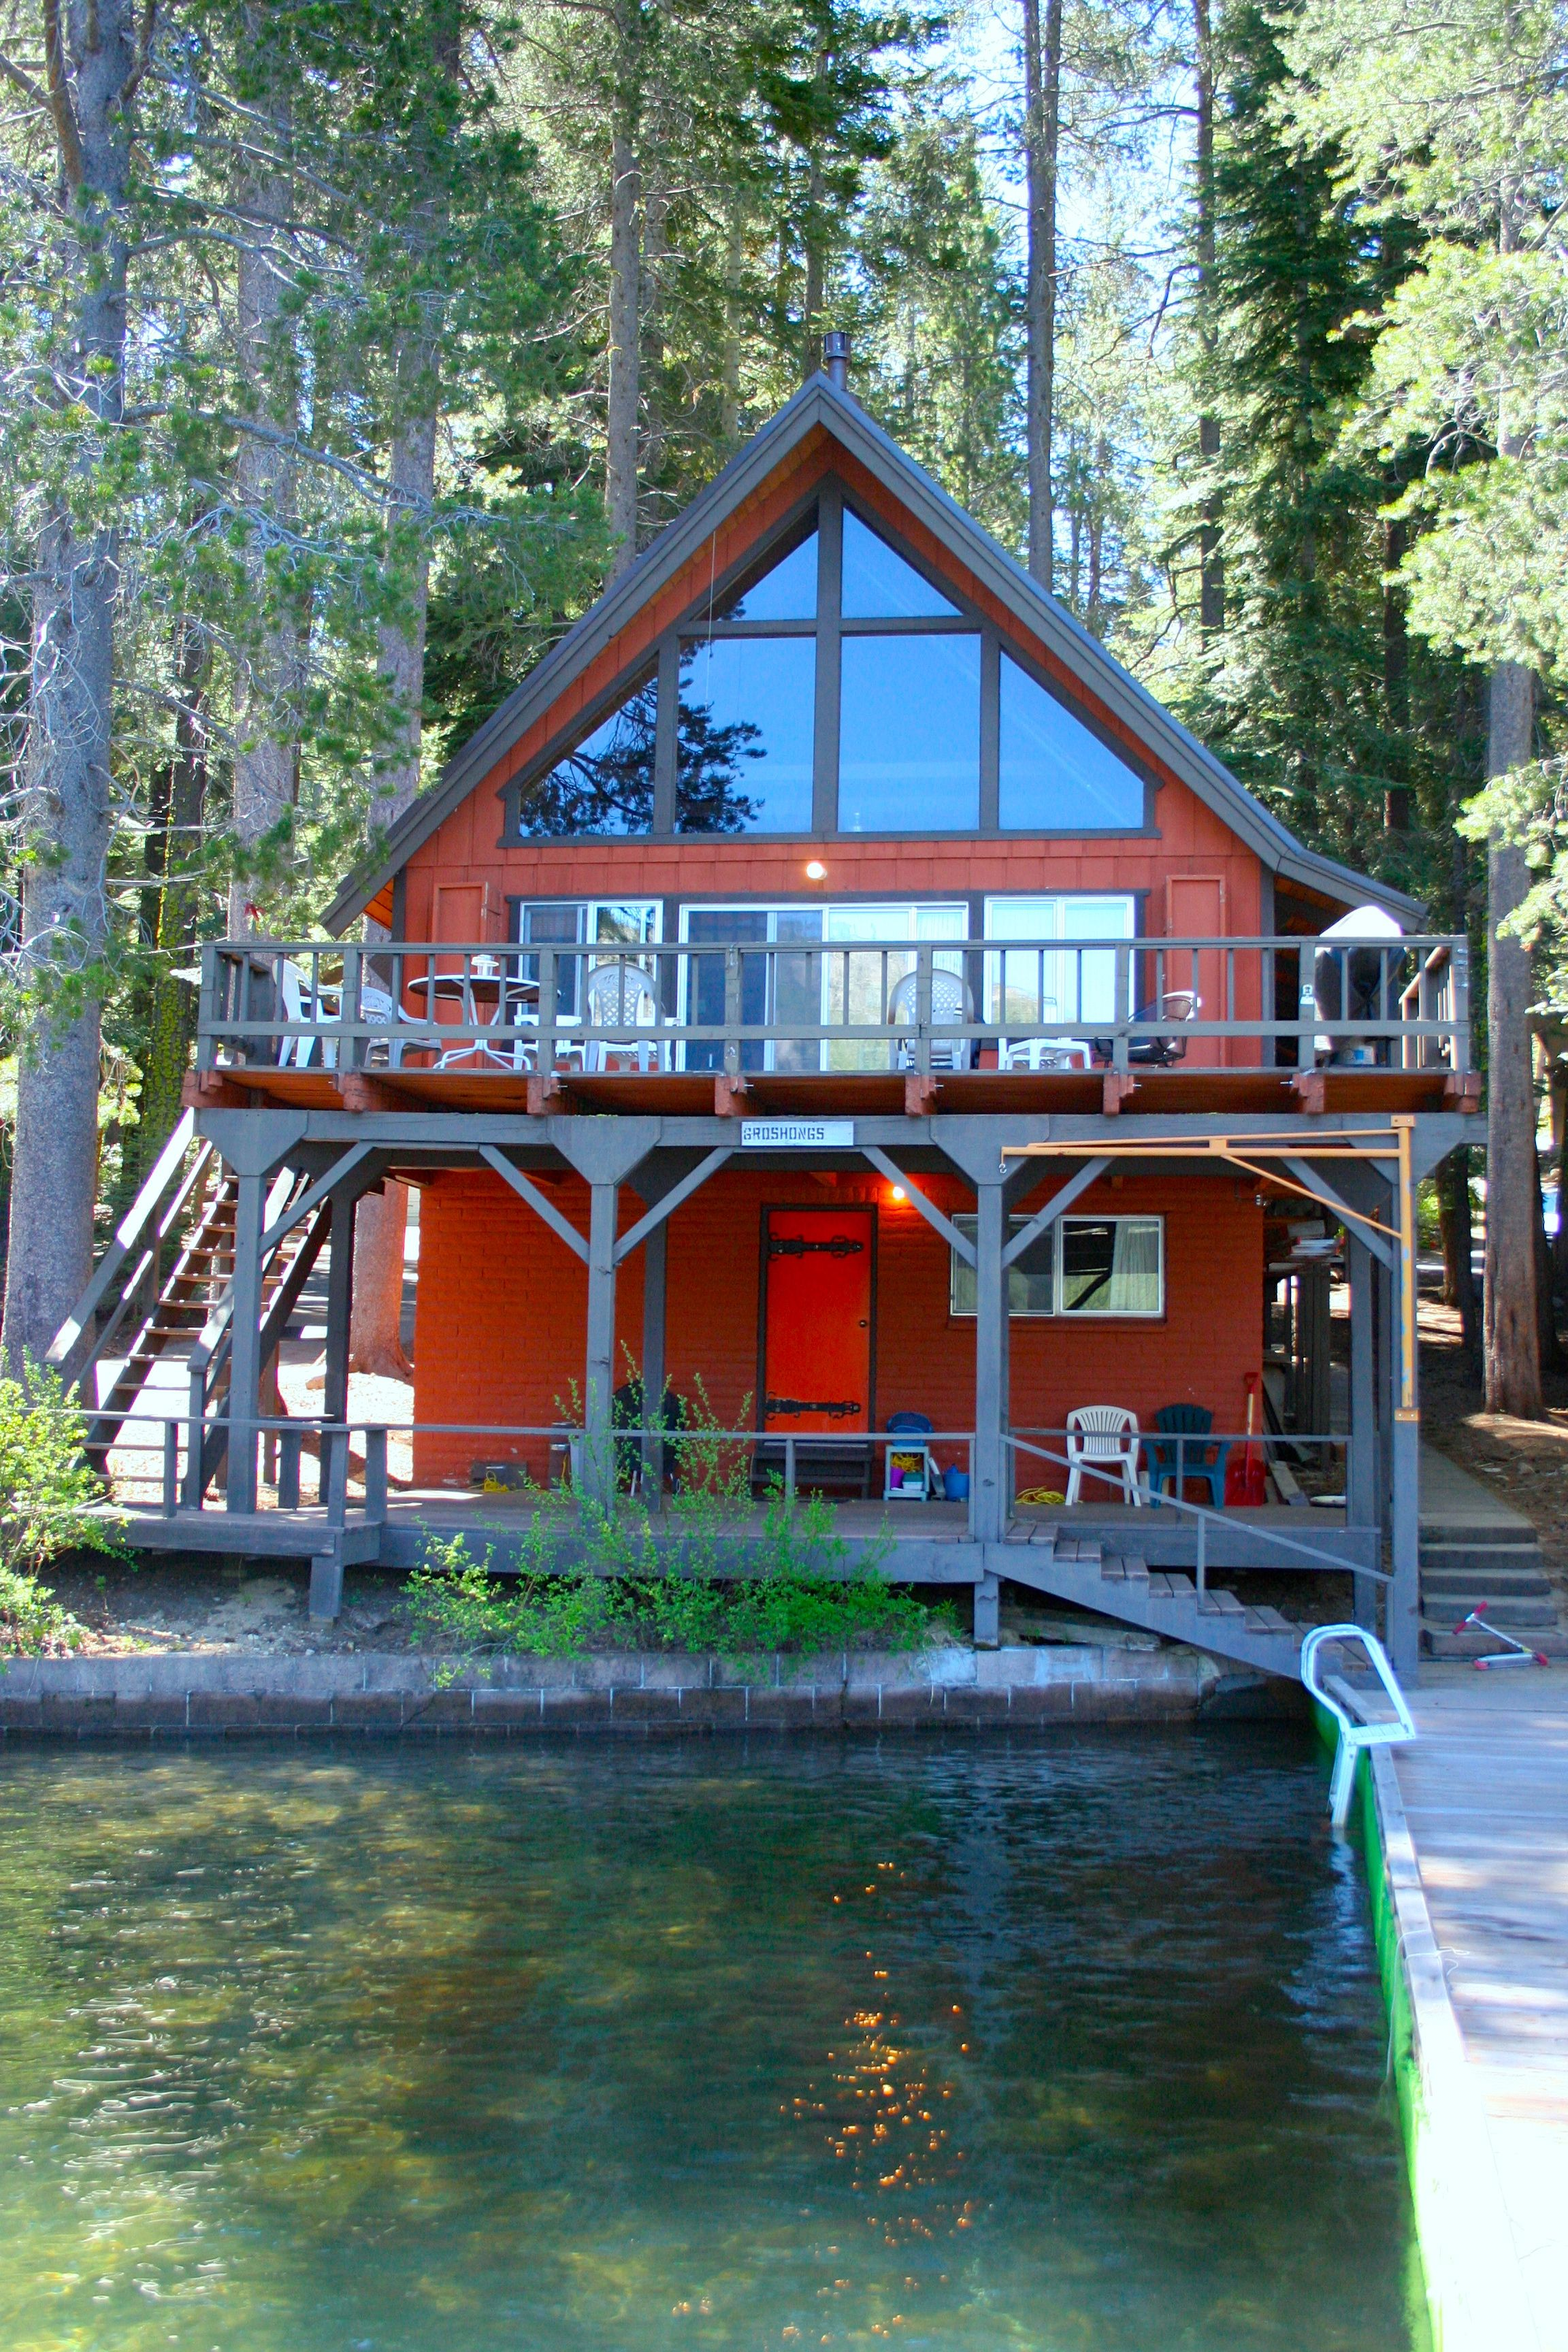 Log home builders nova scotia - Log Cabin Porches Leighter Residence This Log Home Is Constructed With 18 Average Cabin Pinterest Cabin Porches Logs And Log Cabins